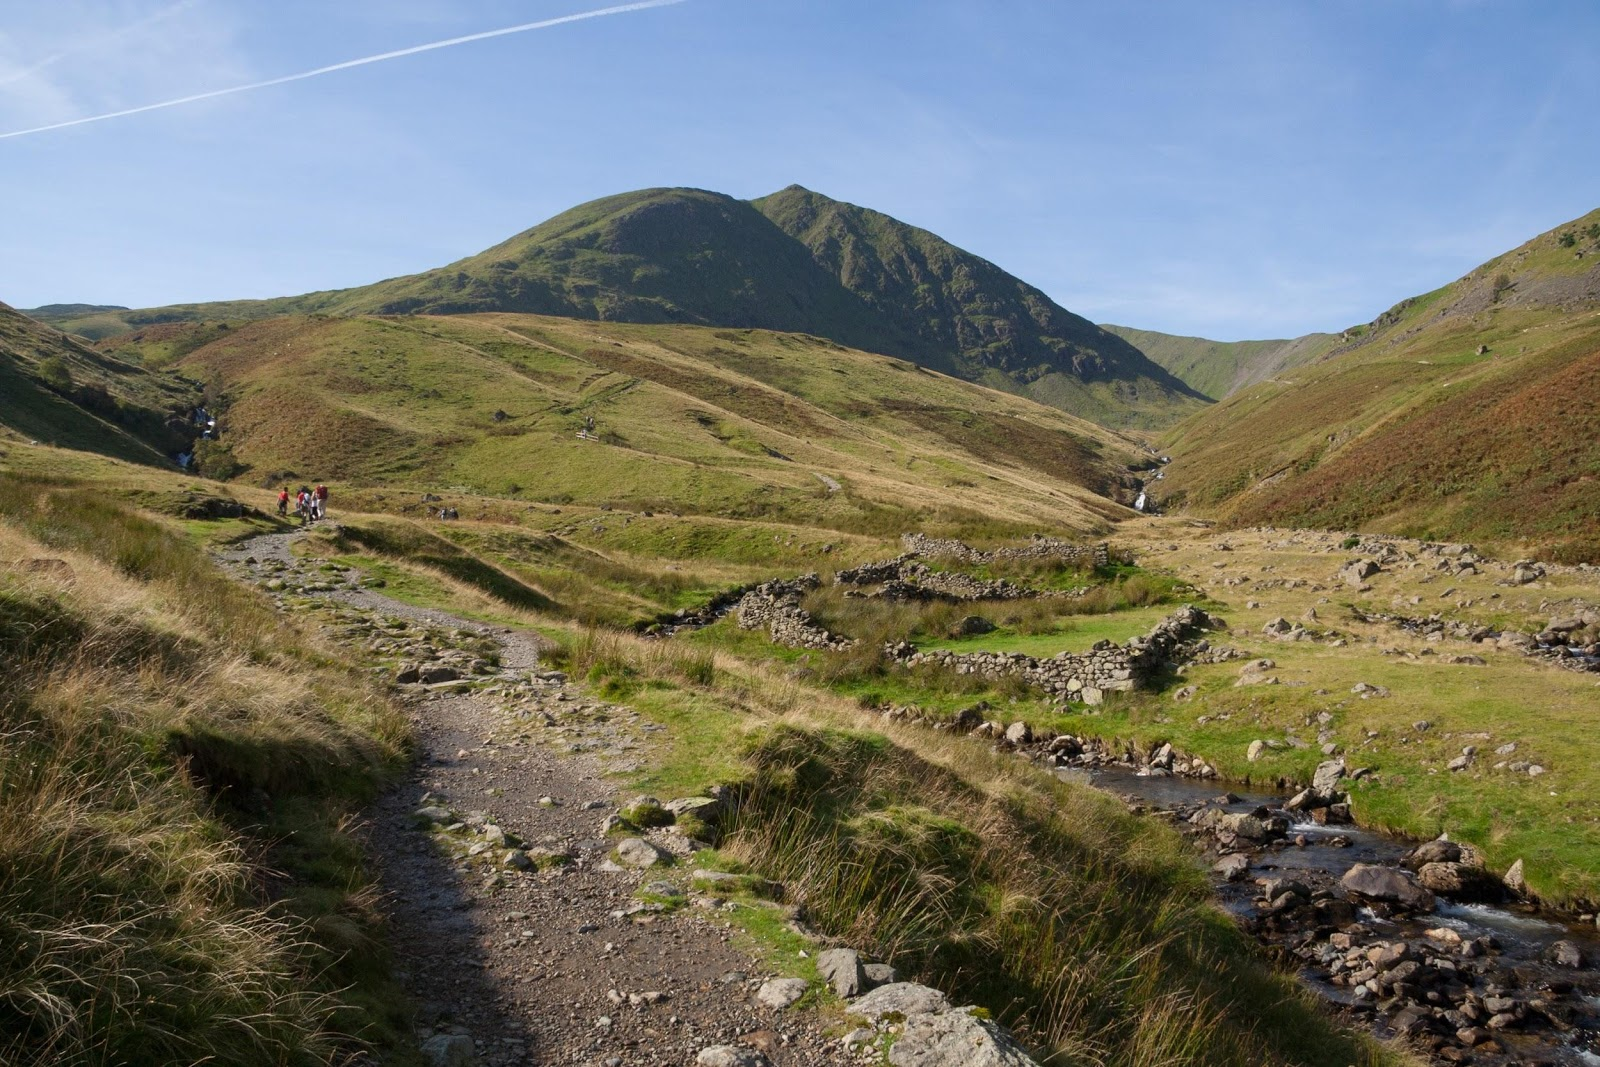 Walkers making their way up the footpath towards Helvellyn in the Lake District